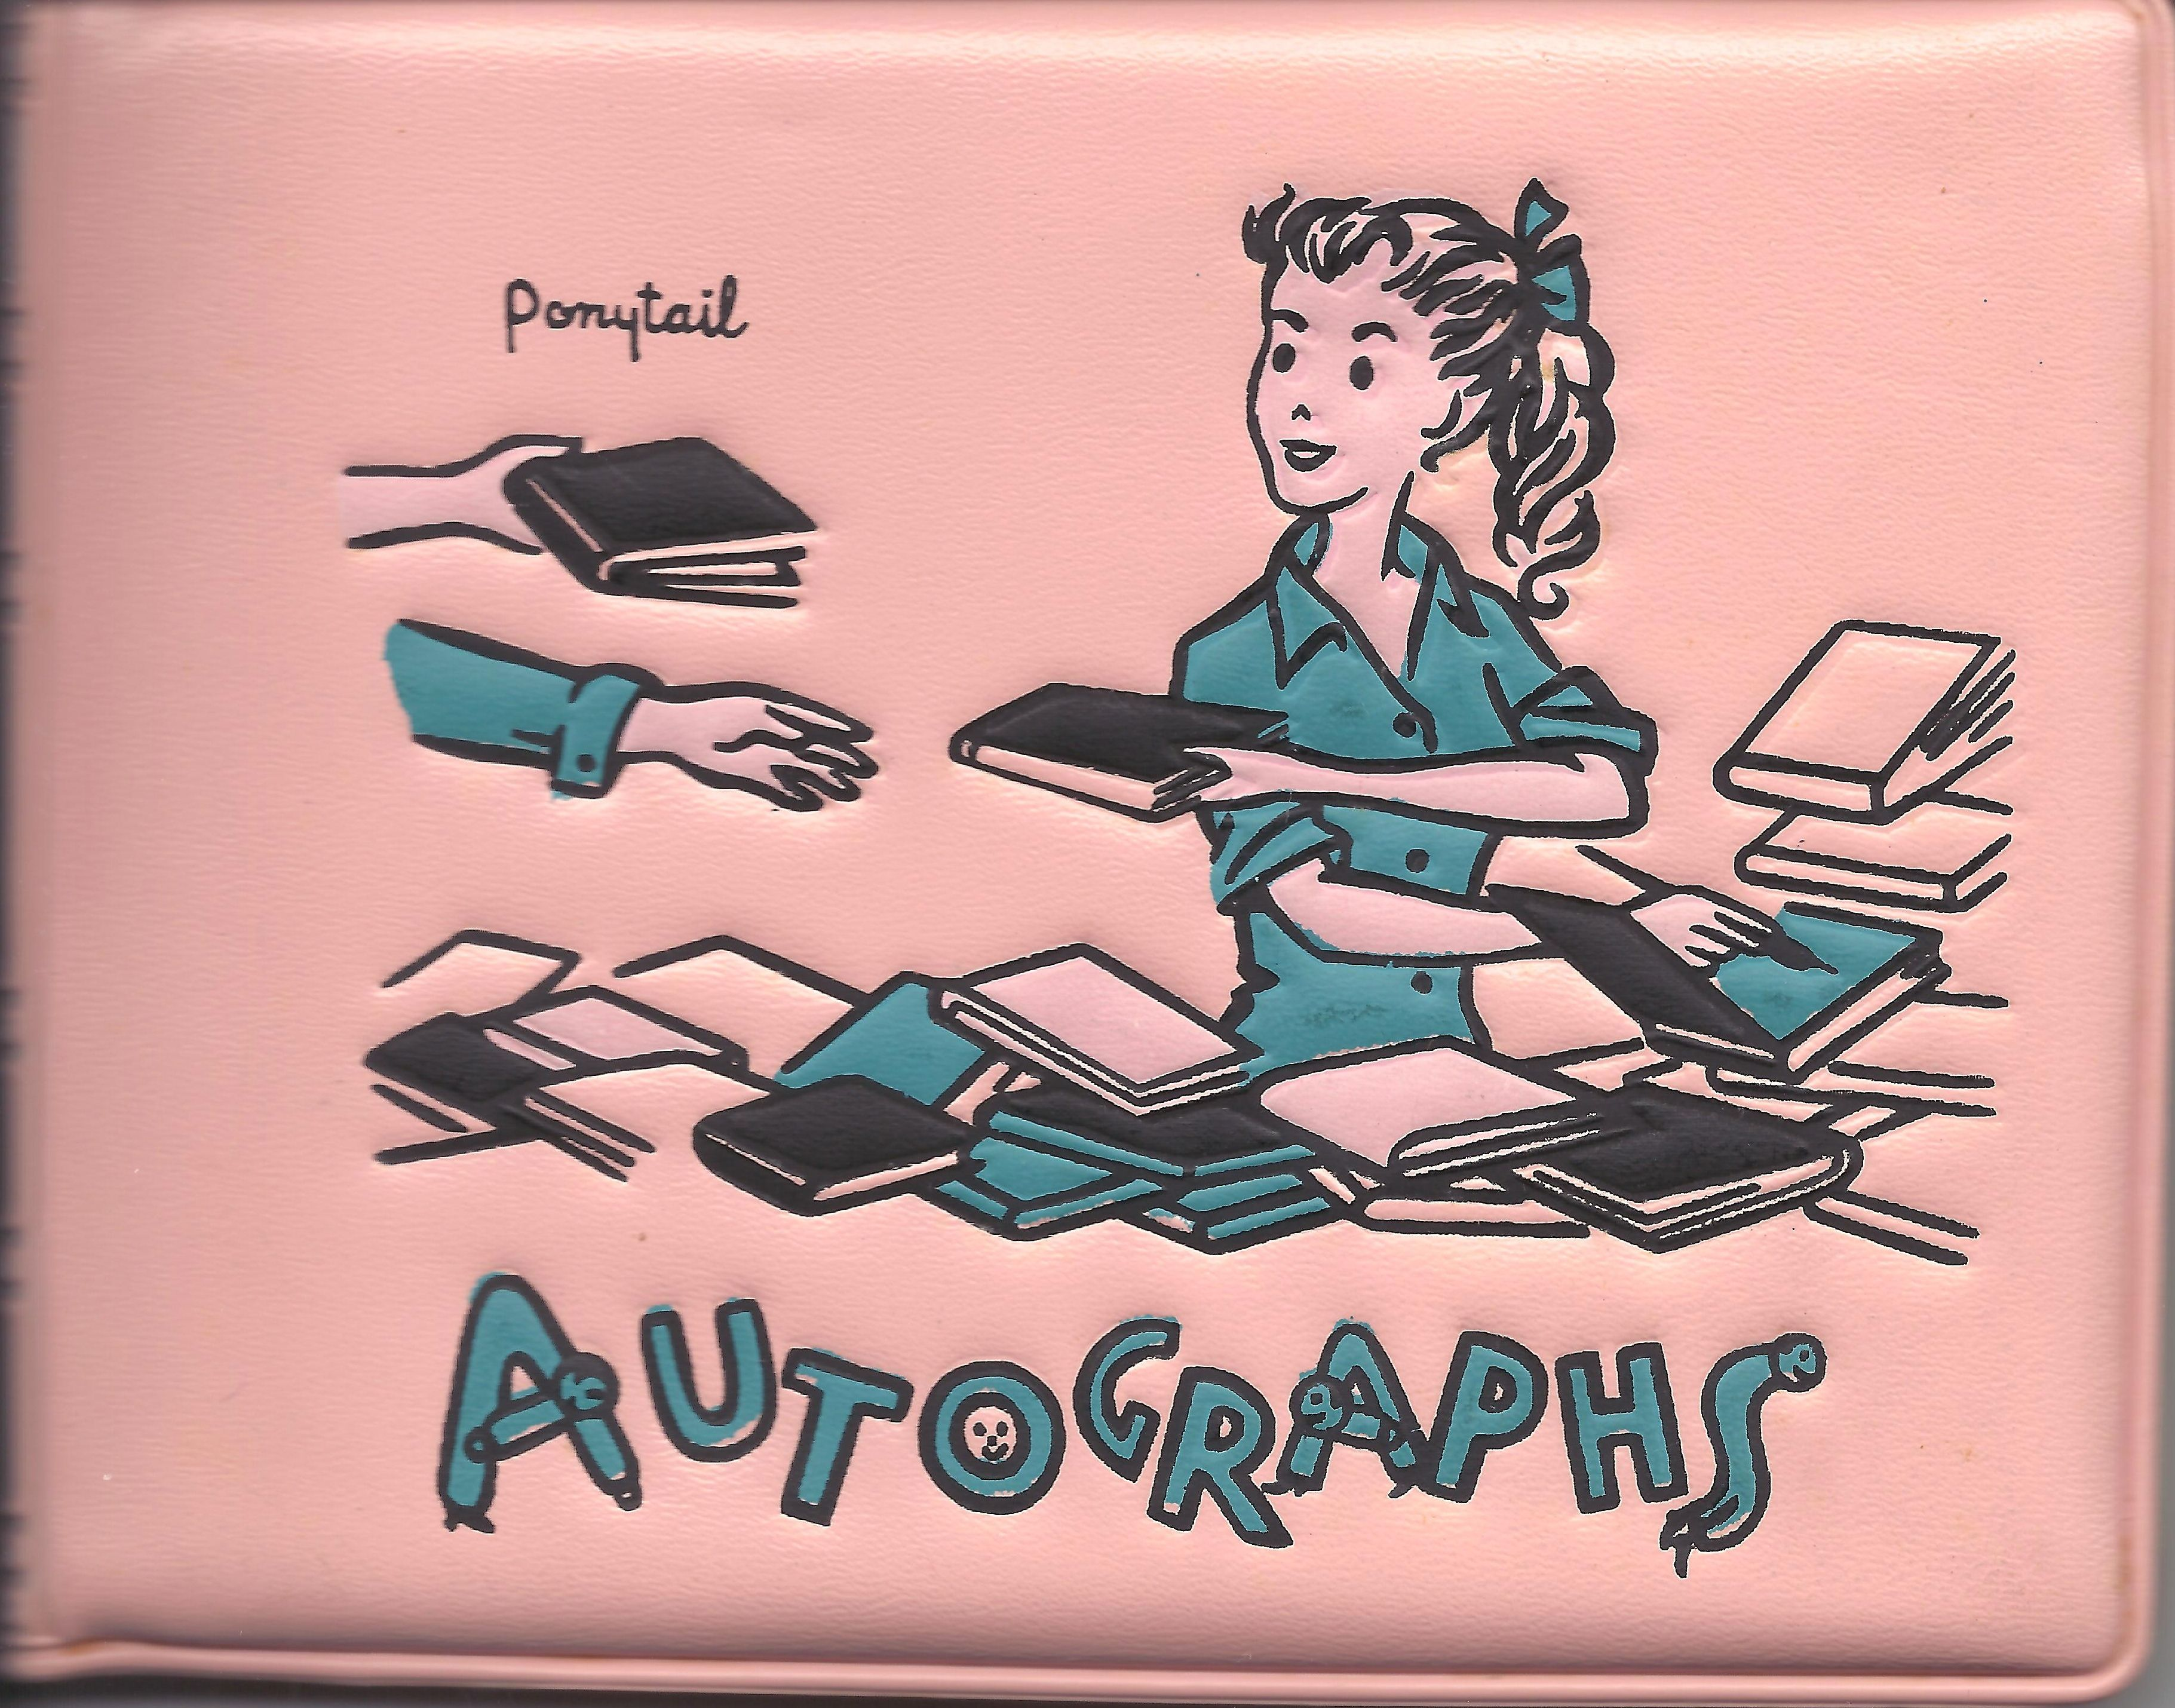 Autograph Books With Funny Quotes Of Friends And Family